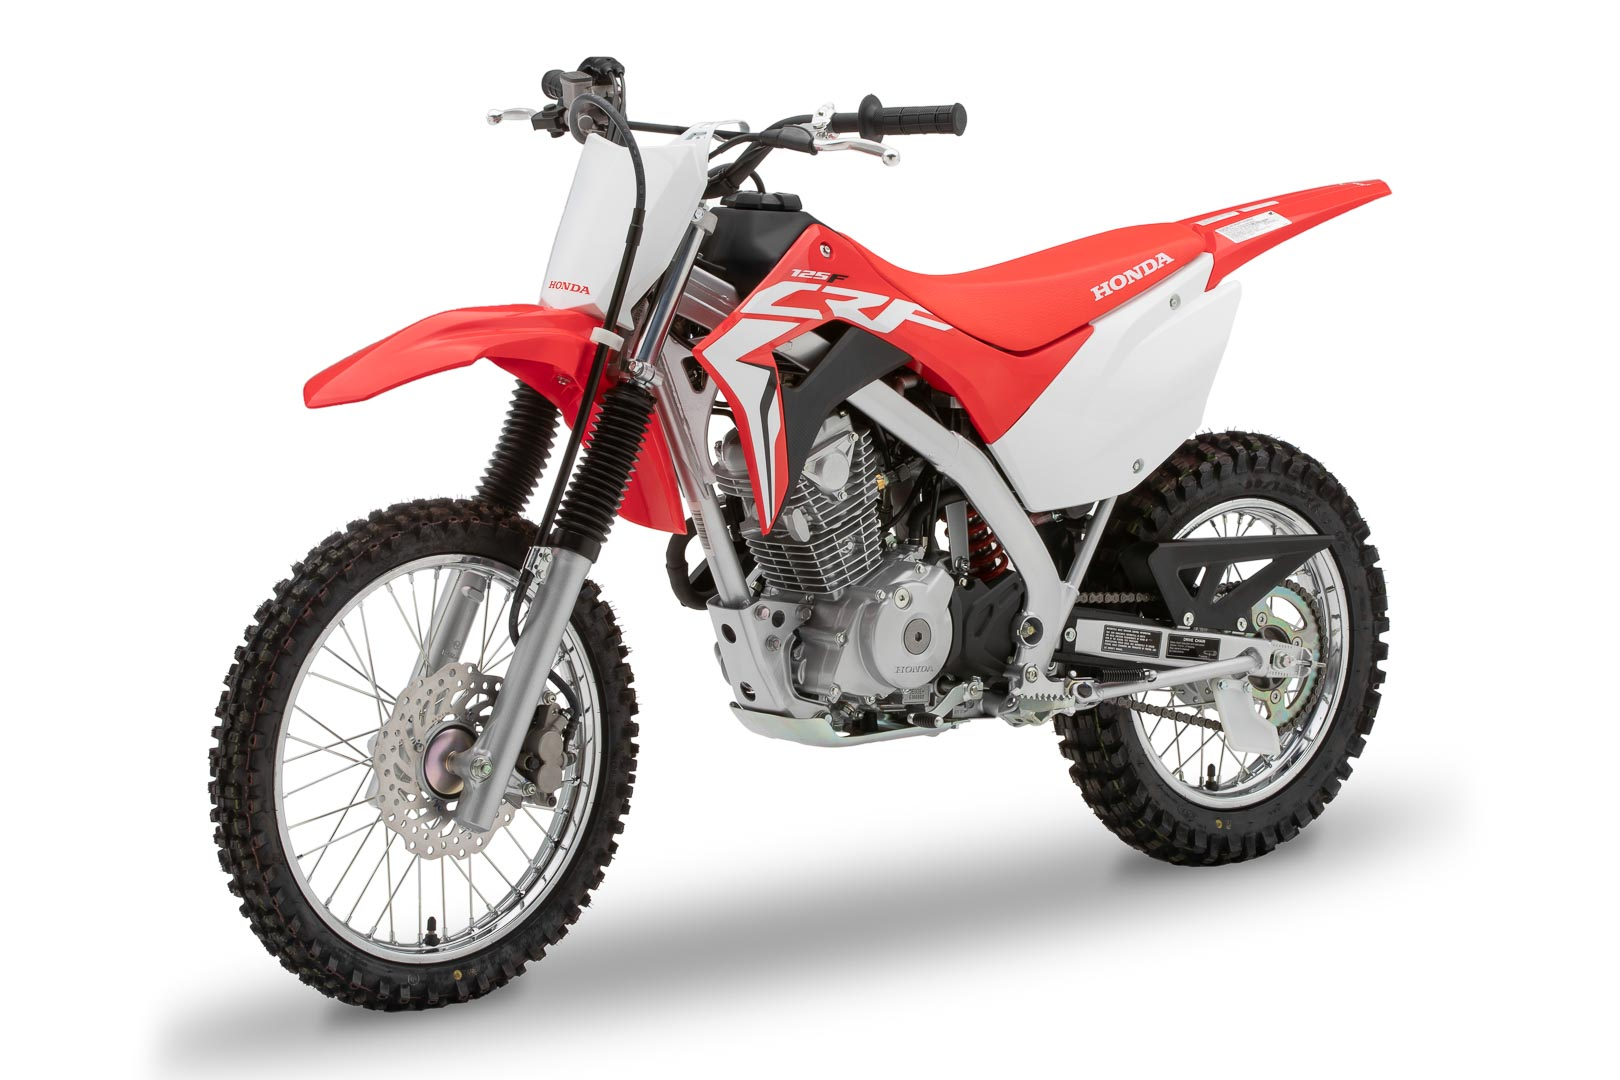 2021 Honda Trail Bike Lineup First Look: CRF125F